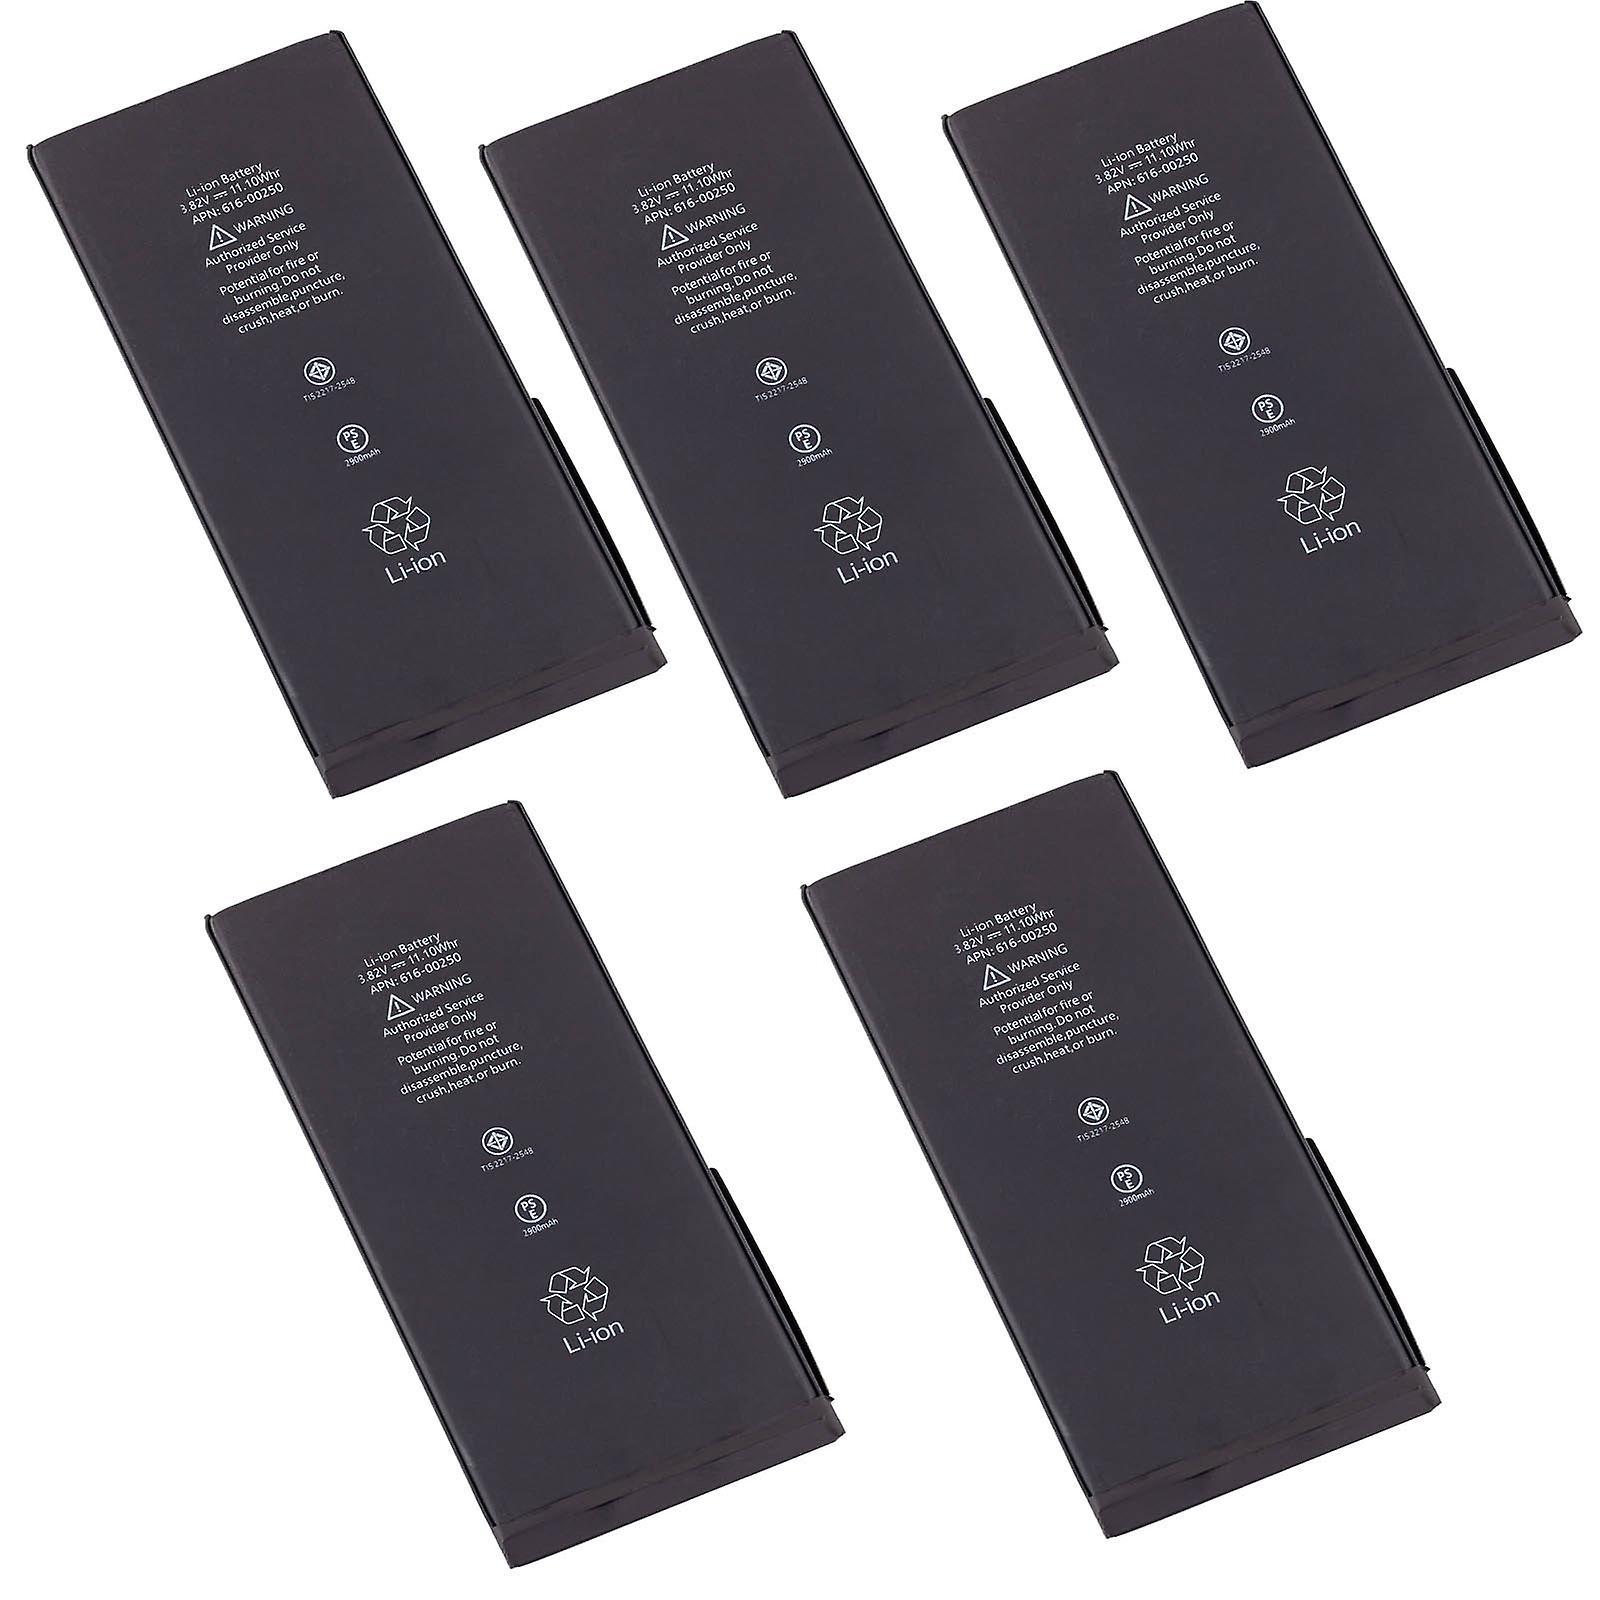 5 Pack lot set of Battery for Apple iPhone 7 Plus, 7+, A1661 A1784 616-00249